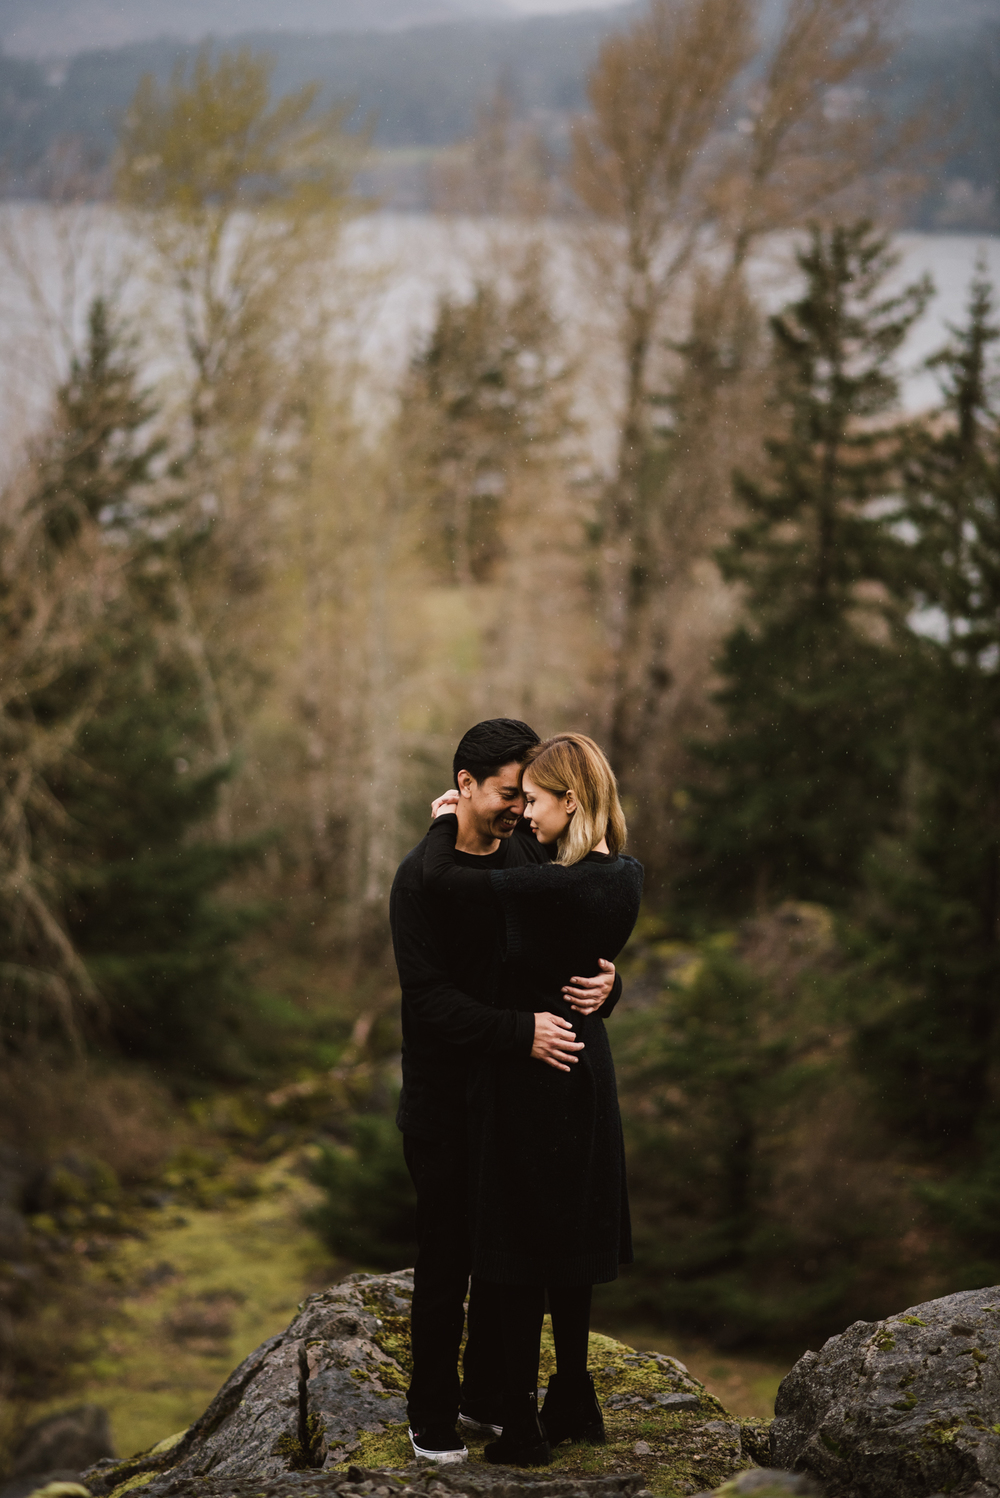 ©Isaiah-&-Taylor-Photography---Columbia-River-Gorge-Engagement,-Portland-Oregon-Wedding-Photographer-052.jpg